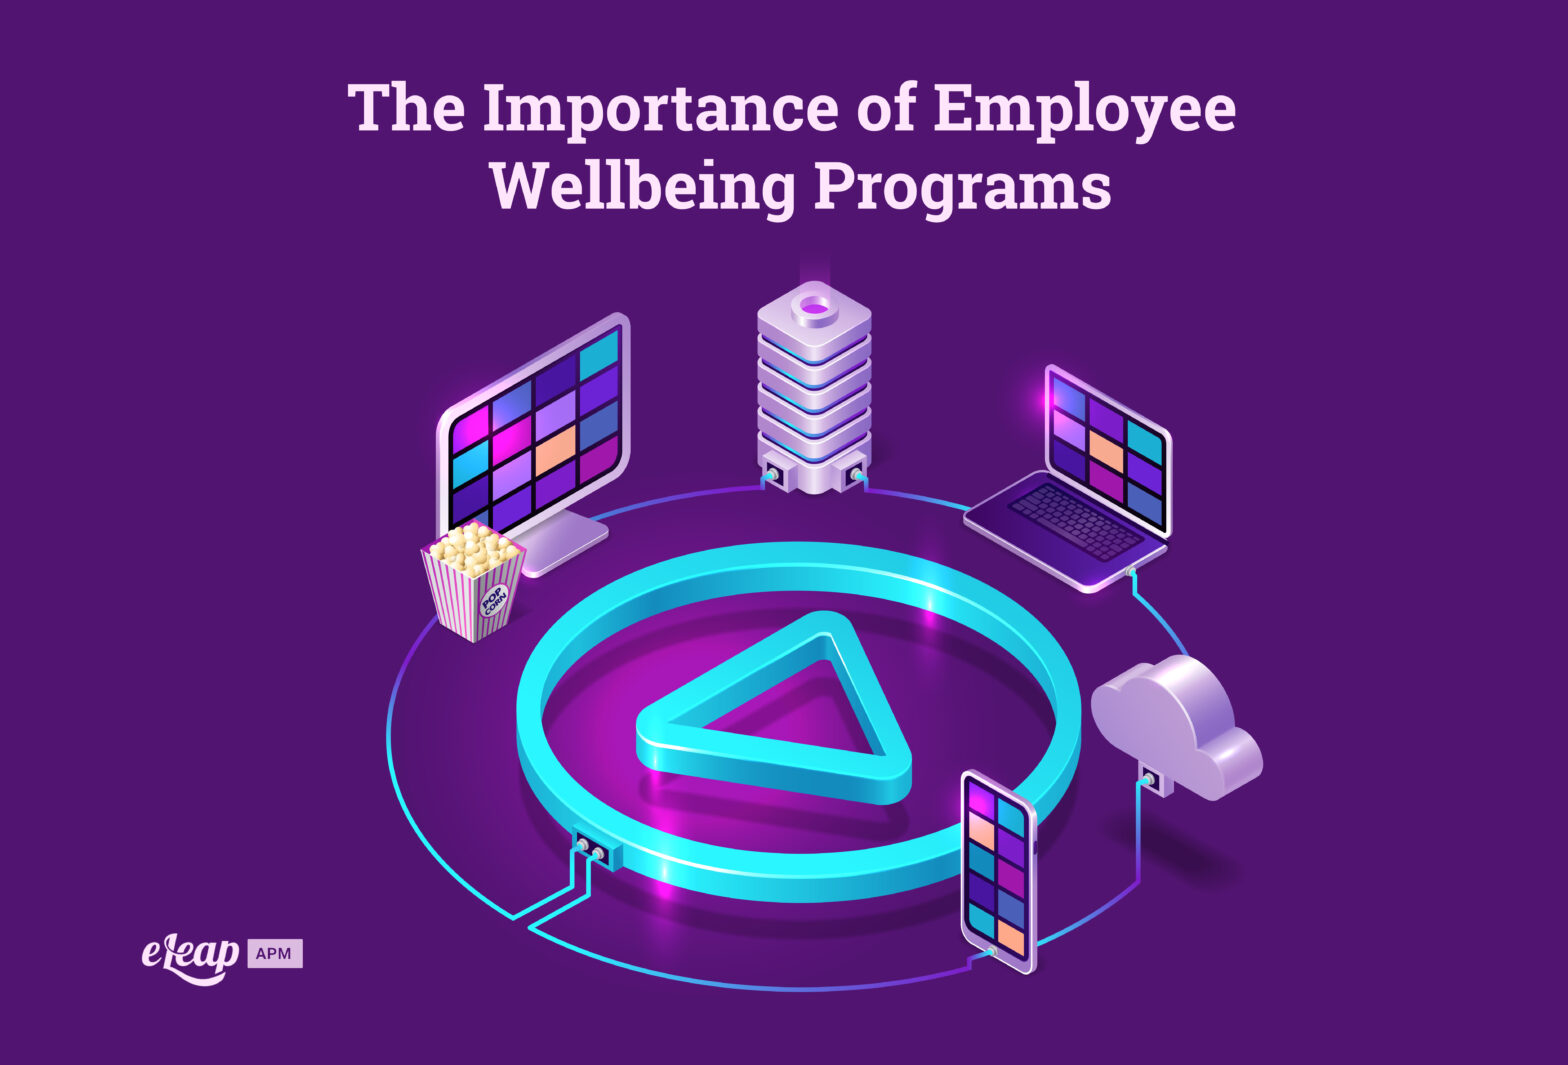 The Importance of Employee Wellbeing Programs